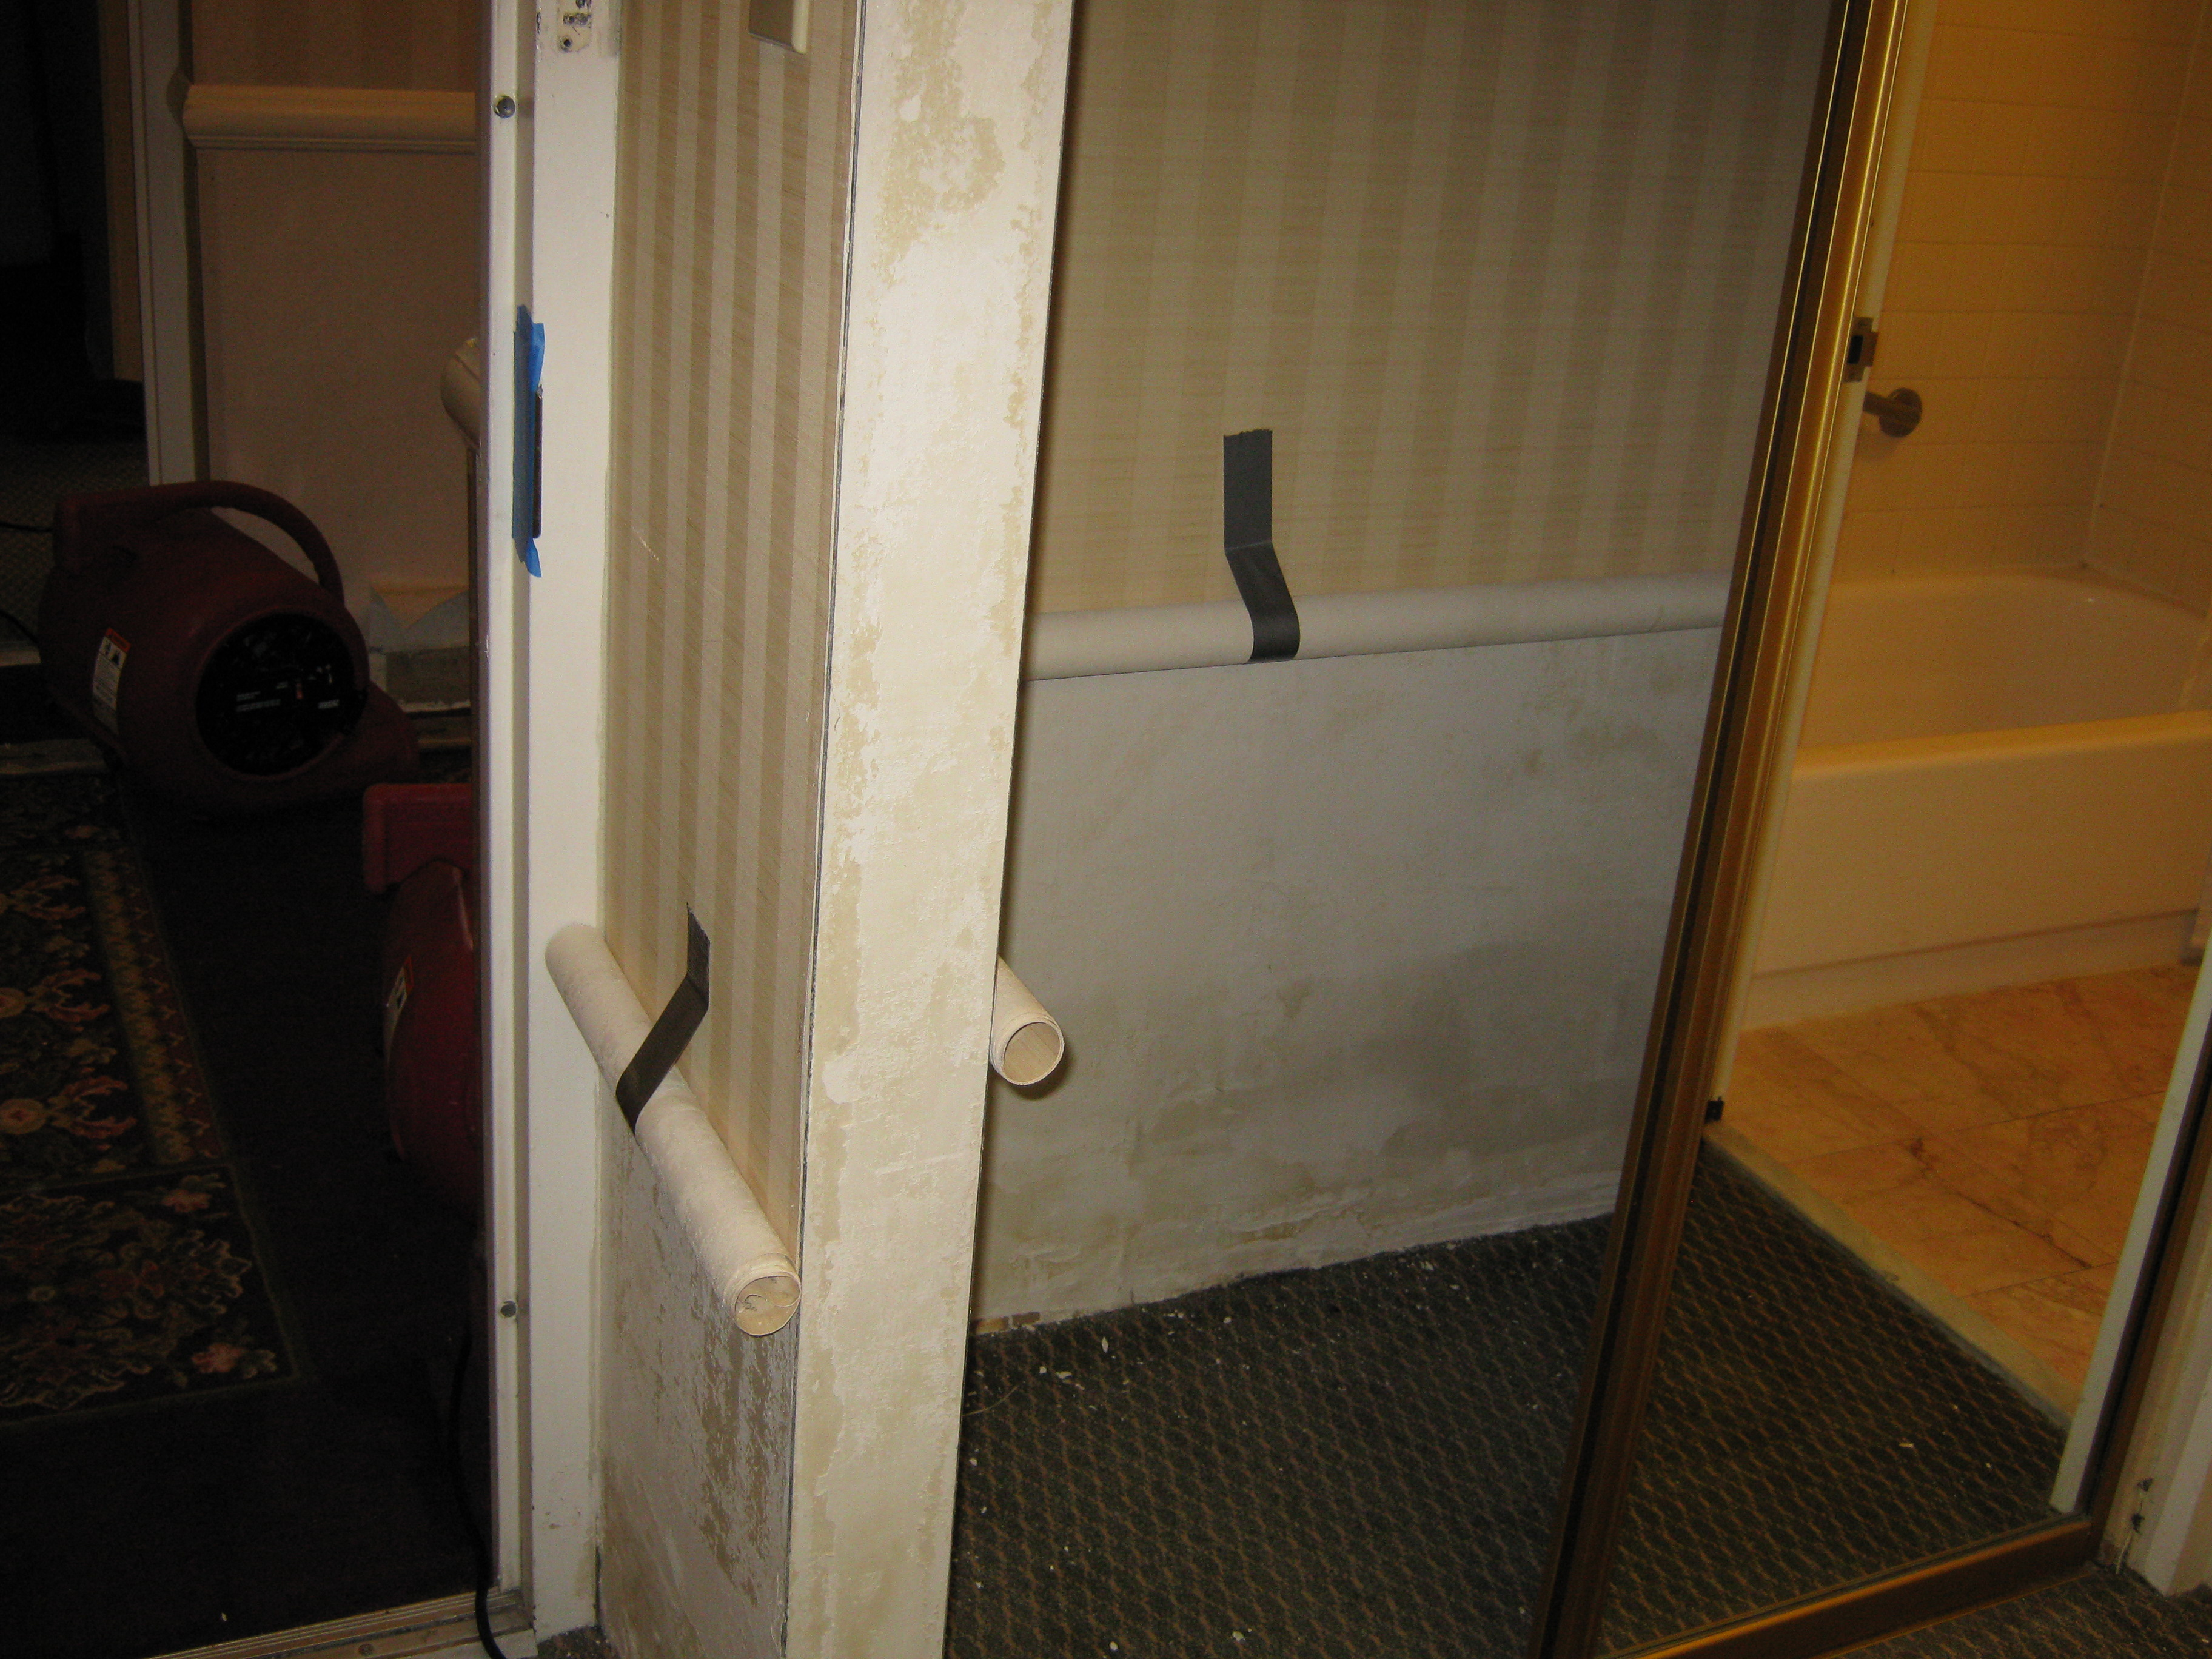 salvaging after water damage in this cherry hill, nj hotel